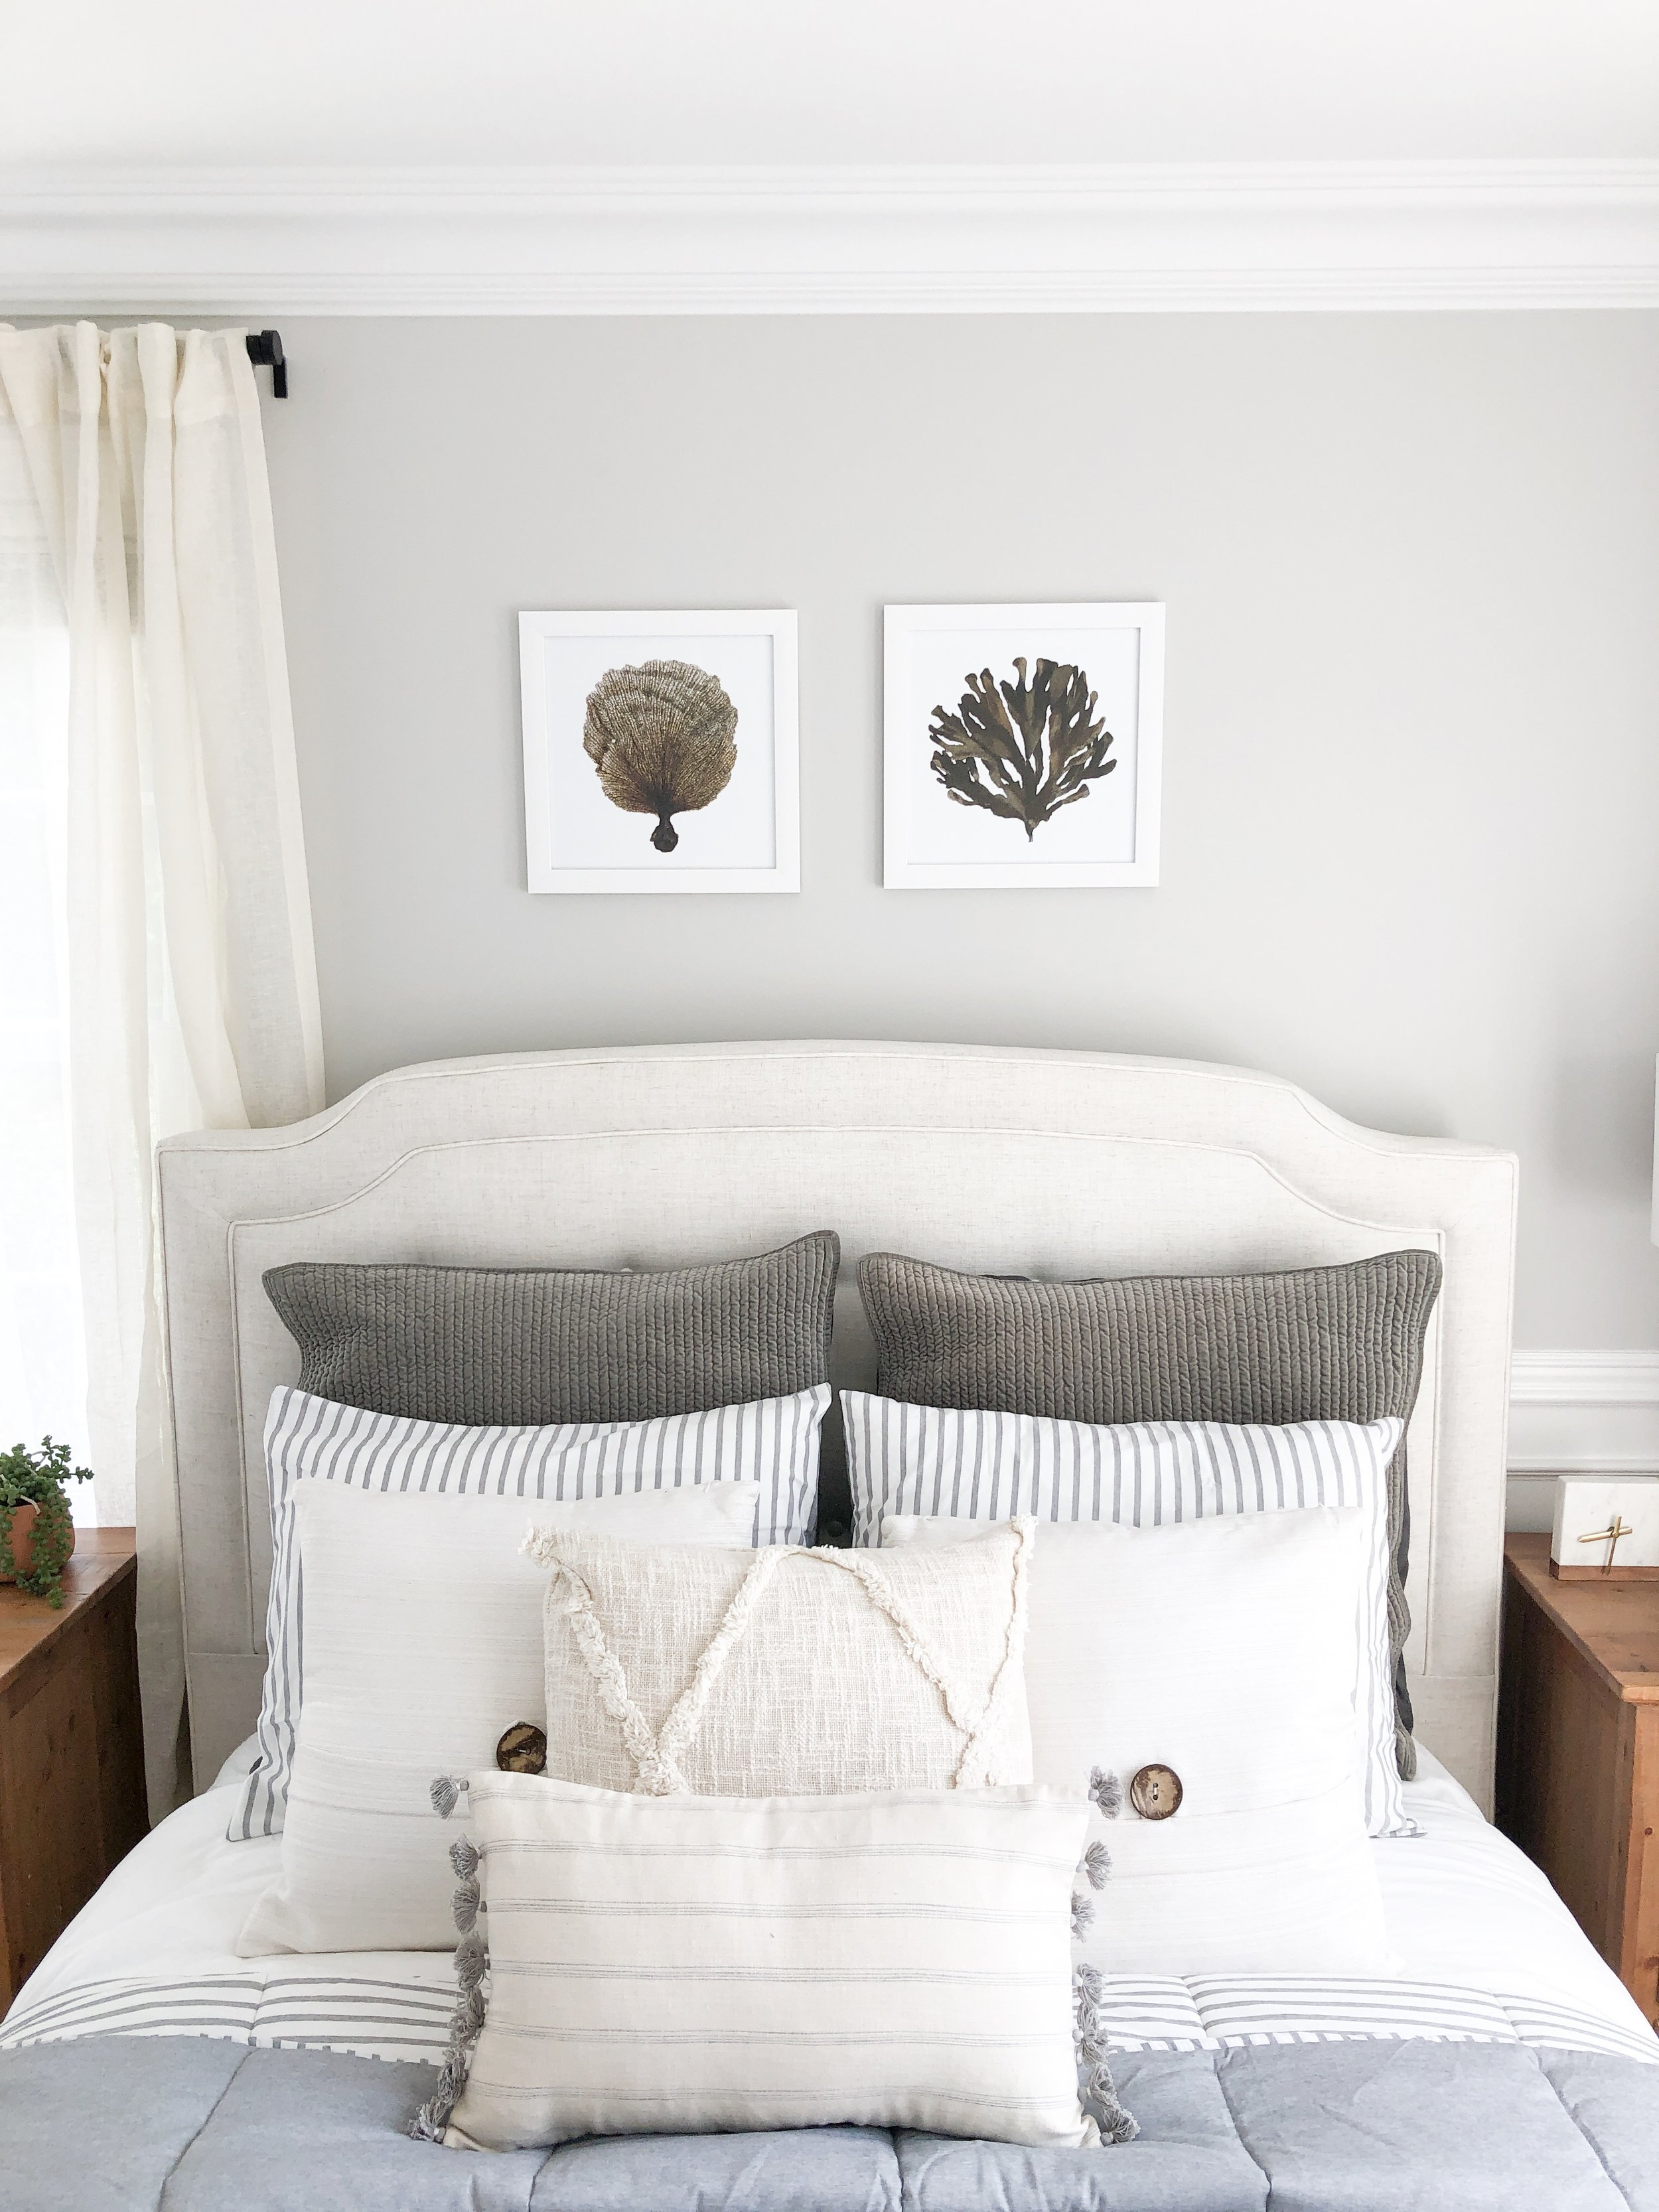 A set of summery prints hang over the bed. Art is an affordable way to update a room so go ahead and pick something that catches your eye! You can easily change it if the season (or your mood) changes.